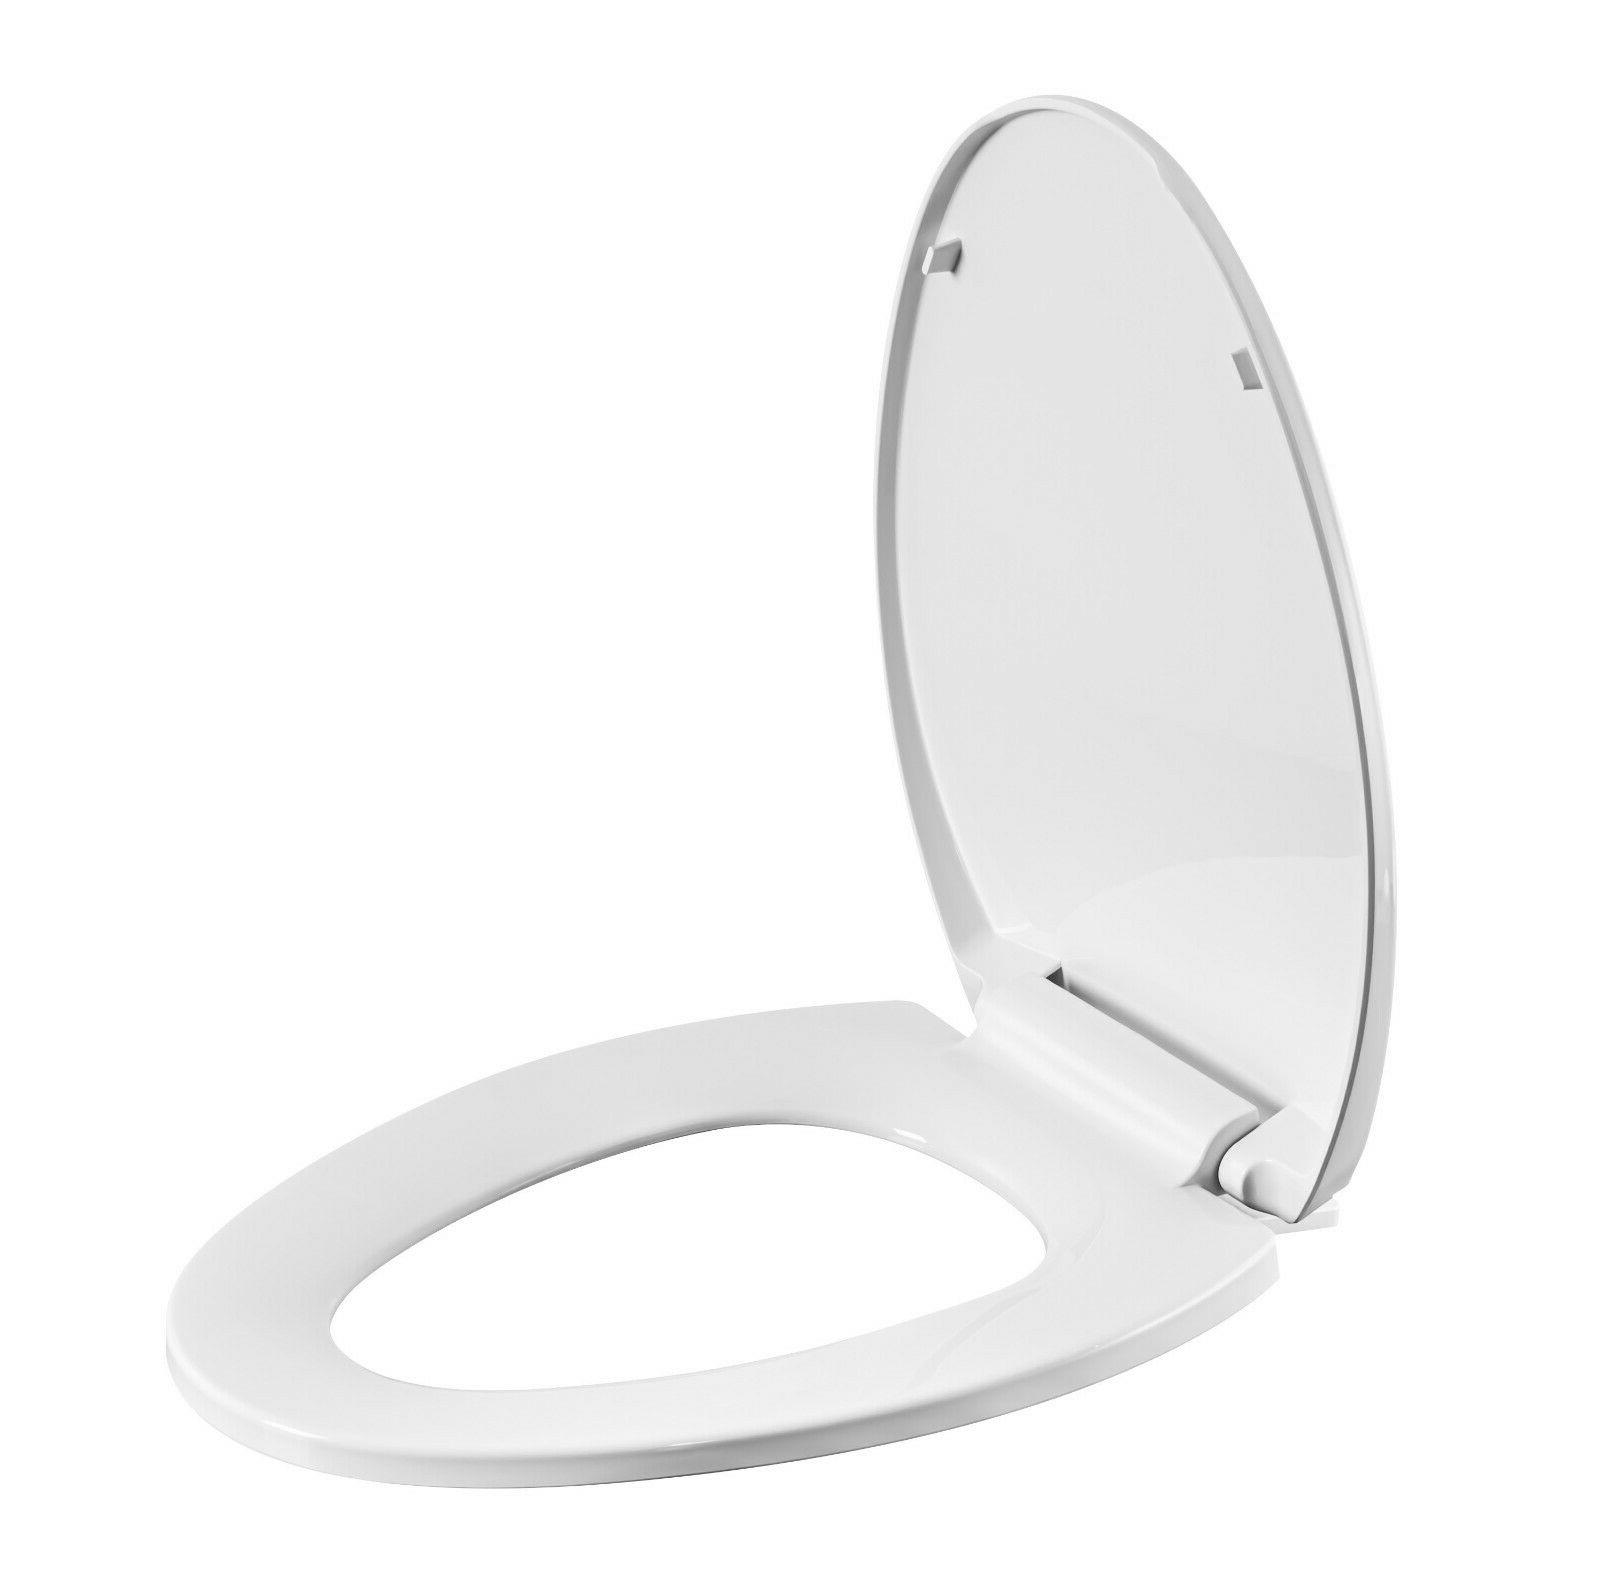 Winfield Toilet Seat Elongated, & Quick